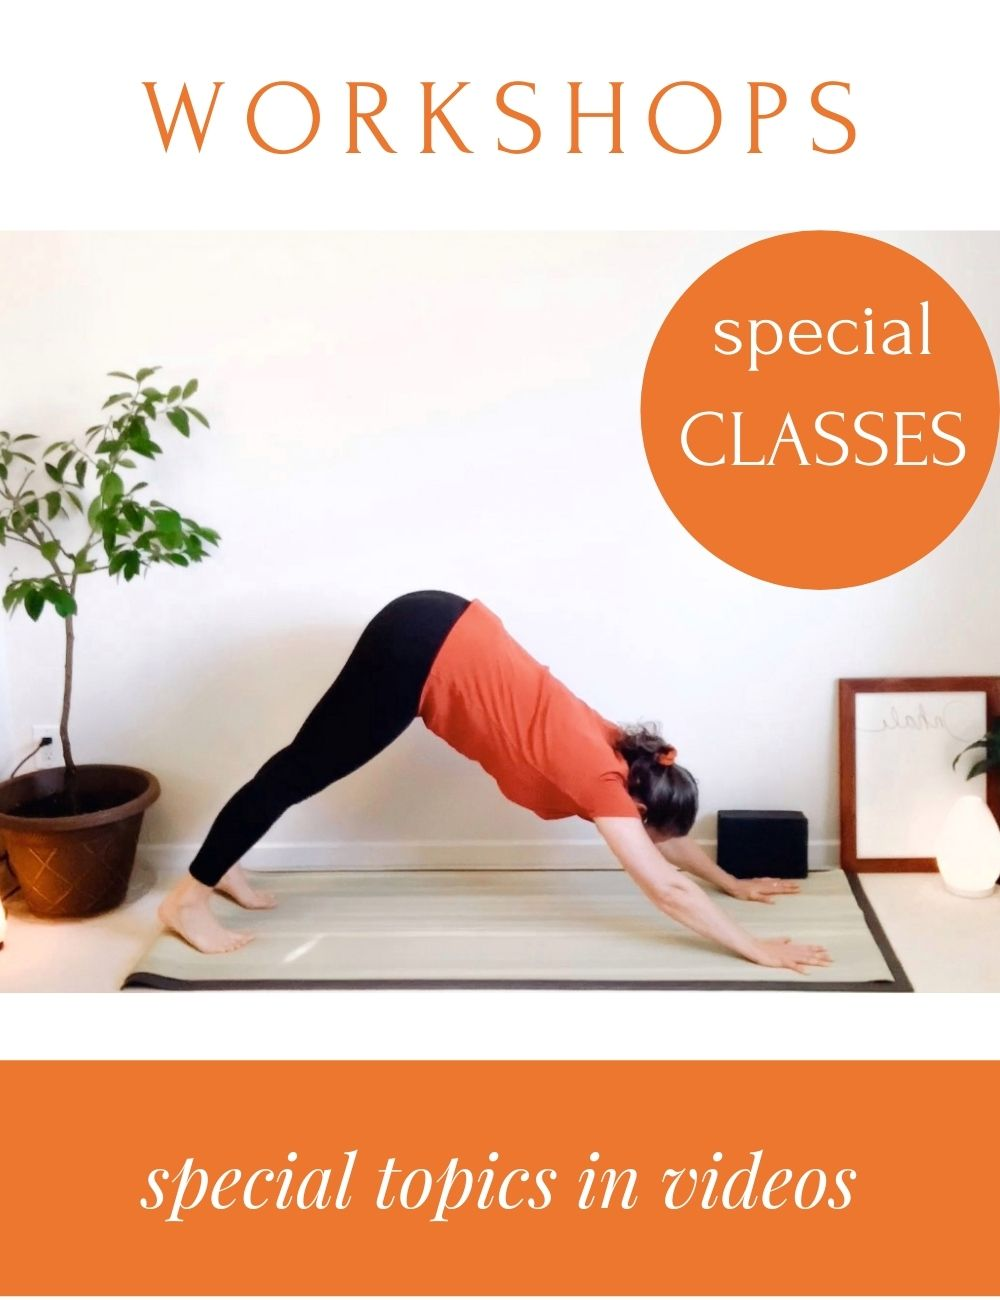 Learn Yoga with Laura